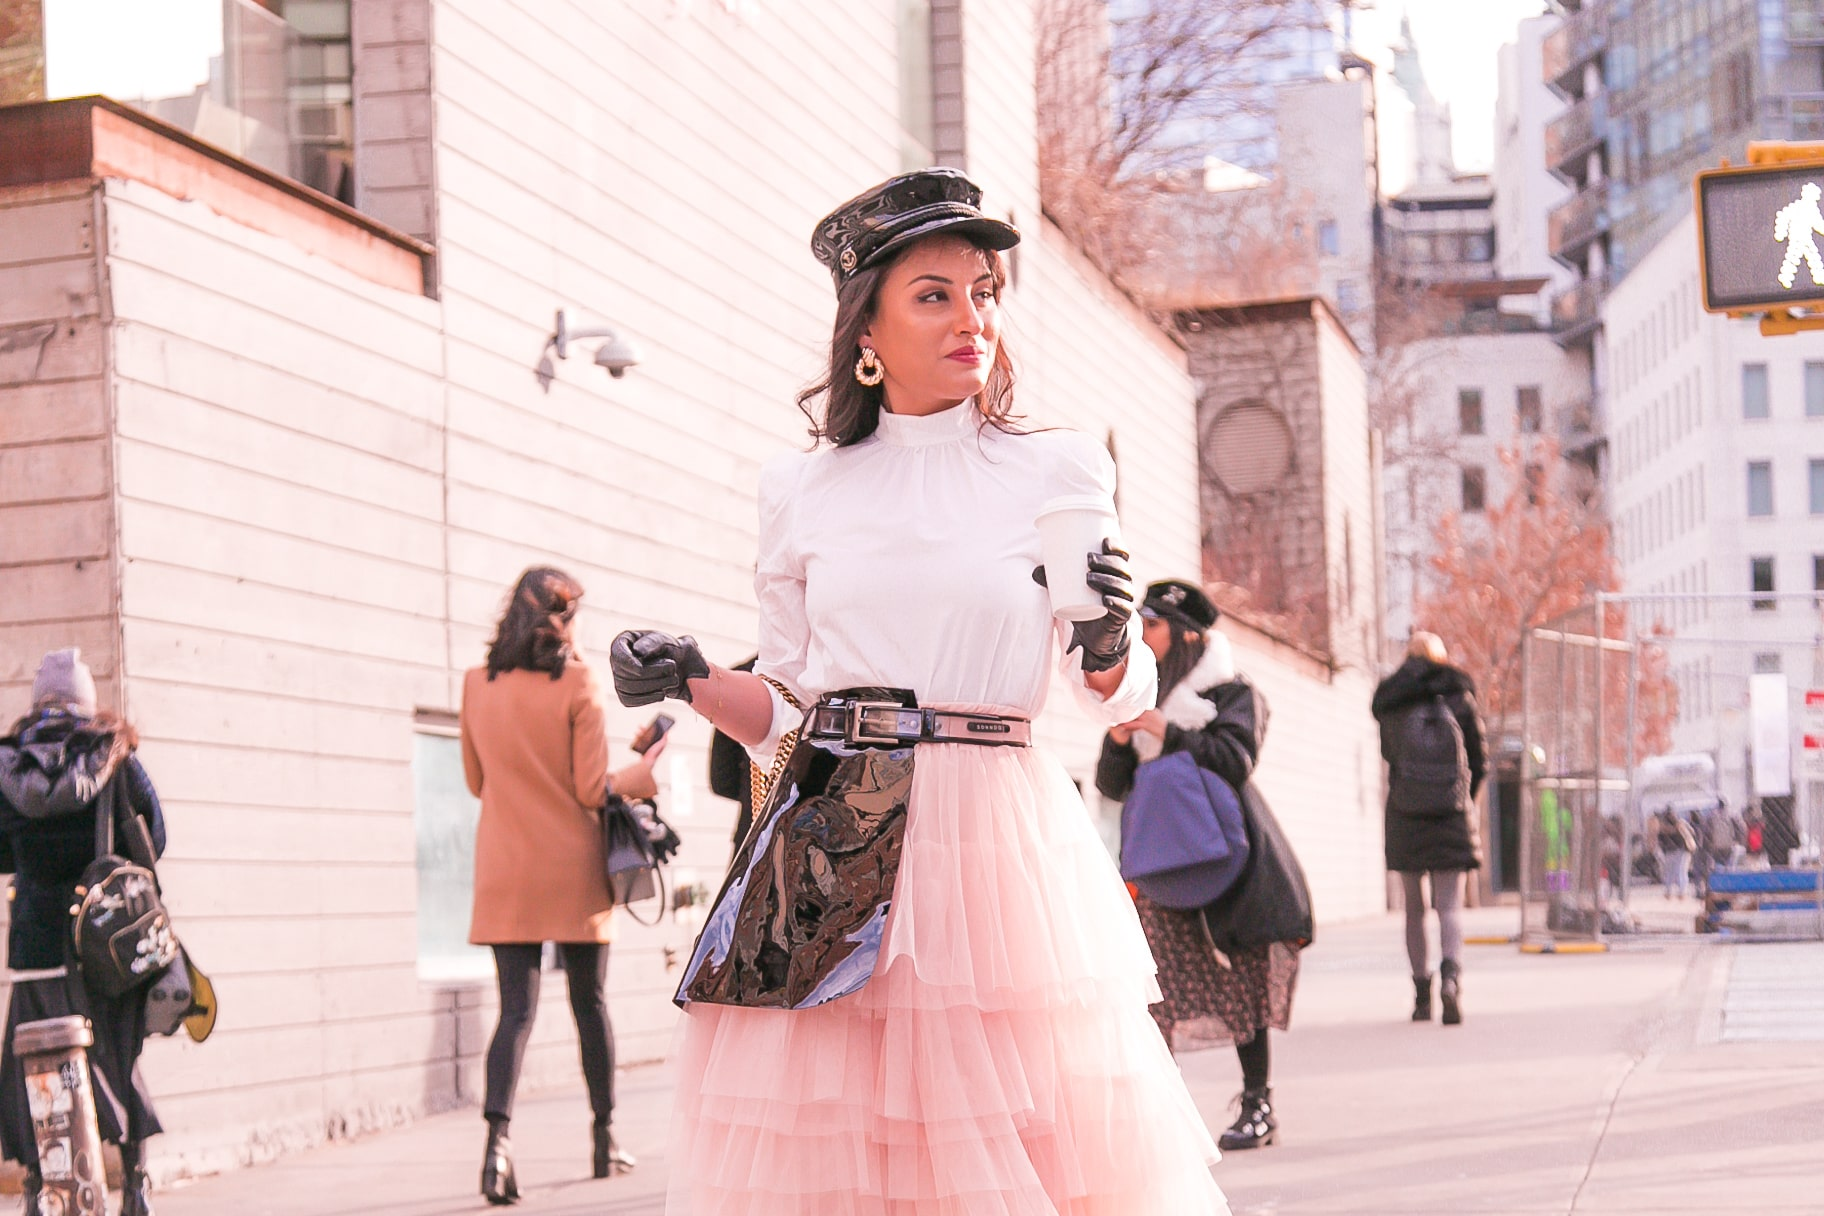 9e8a57b65eb NYFW DAY 4 OUTFIT  MODERN PRINCESS TAKES NEW YORK - The Pink and Petite